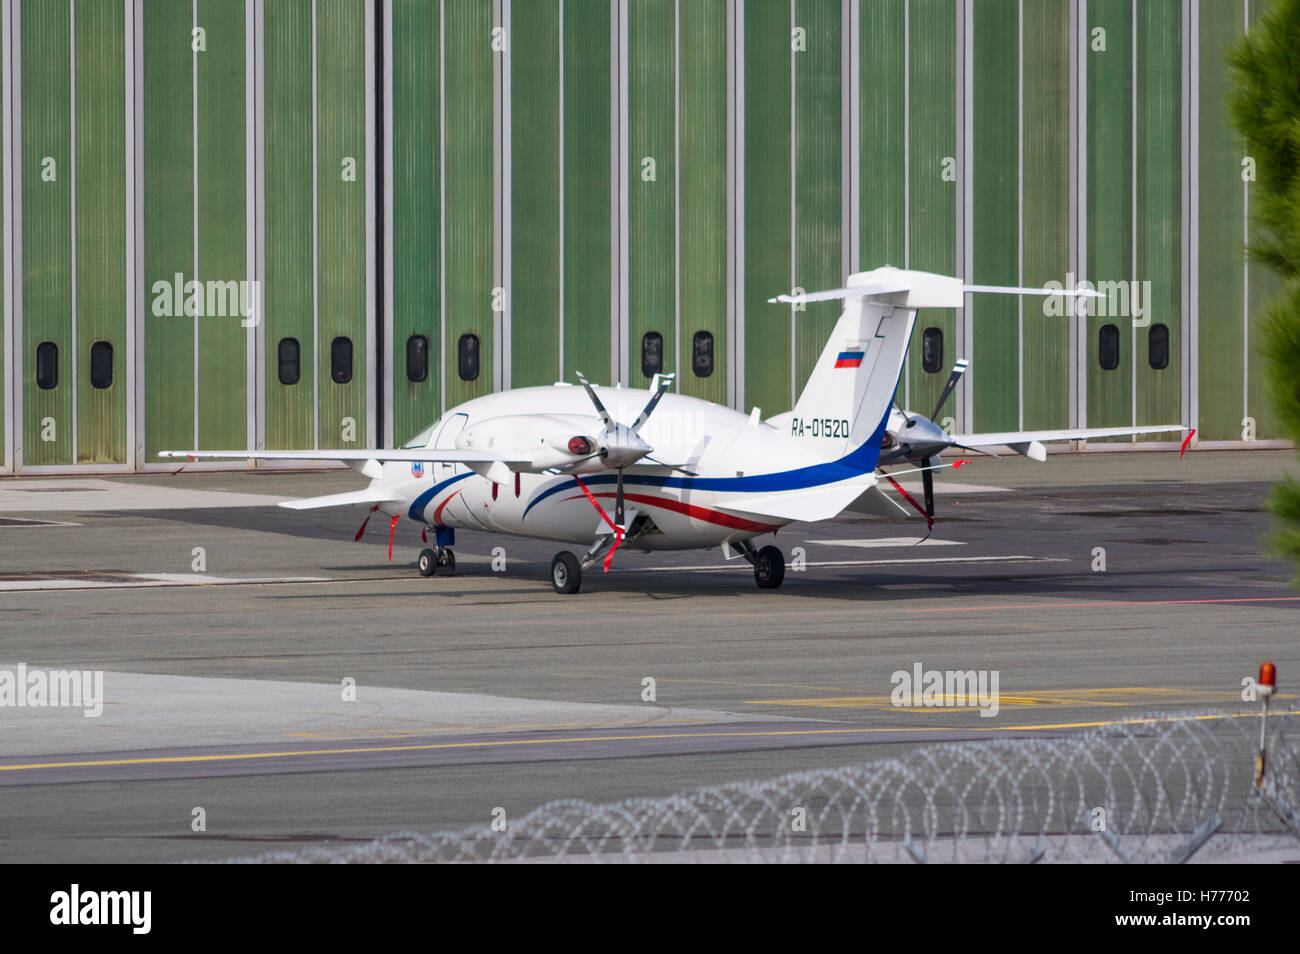 Piaggio P.180 Avanti II, an Italian business executive aircraft with twin turboprop engines mounted in pusher configuration. - Stock Image